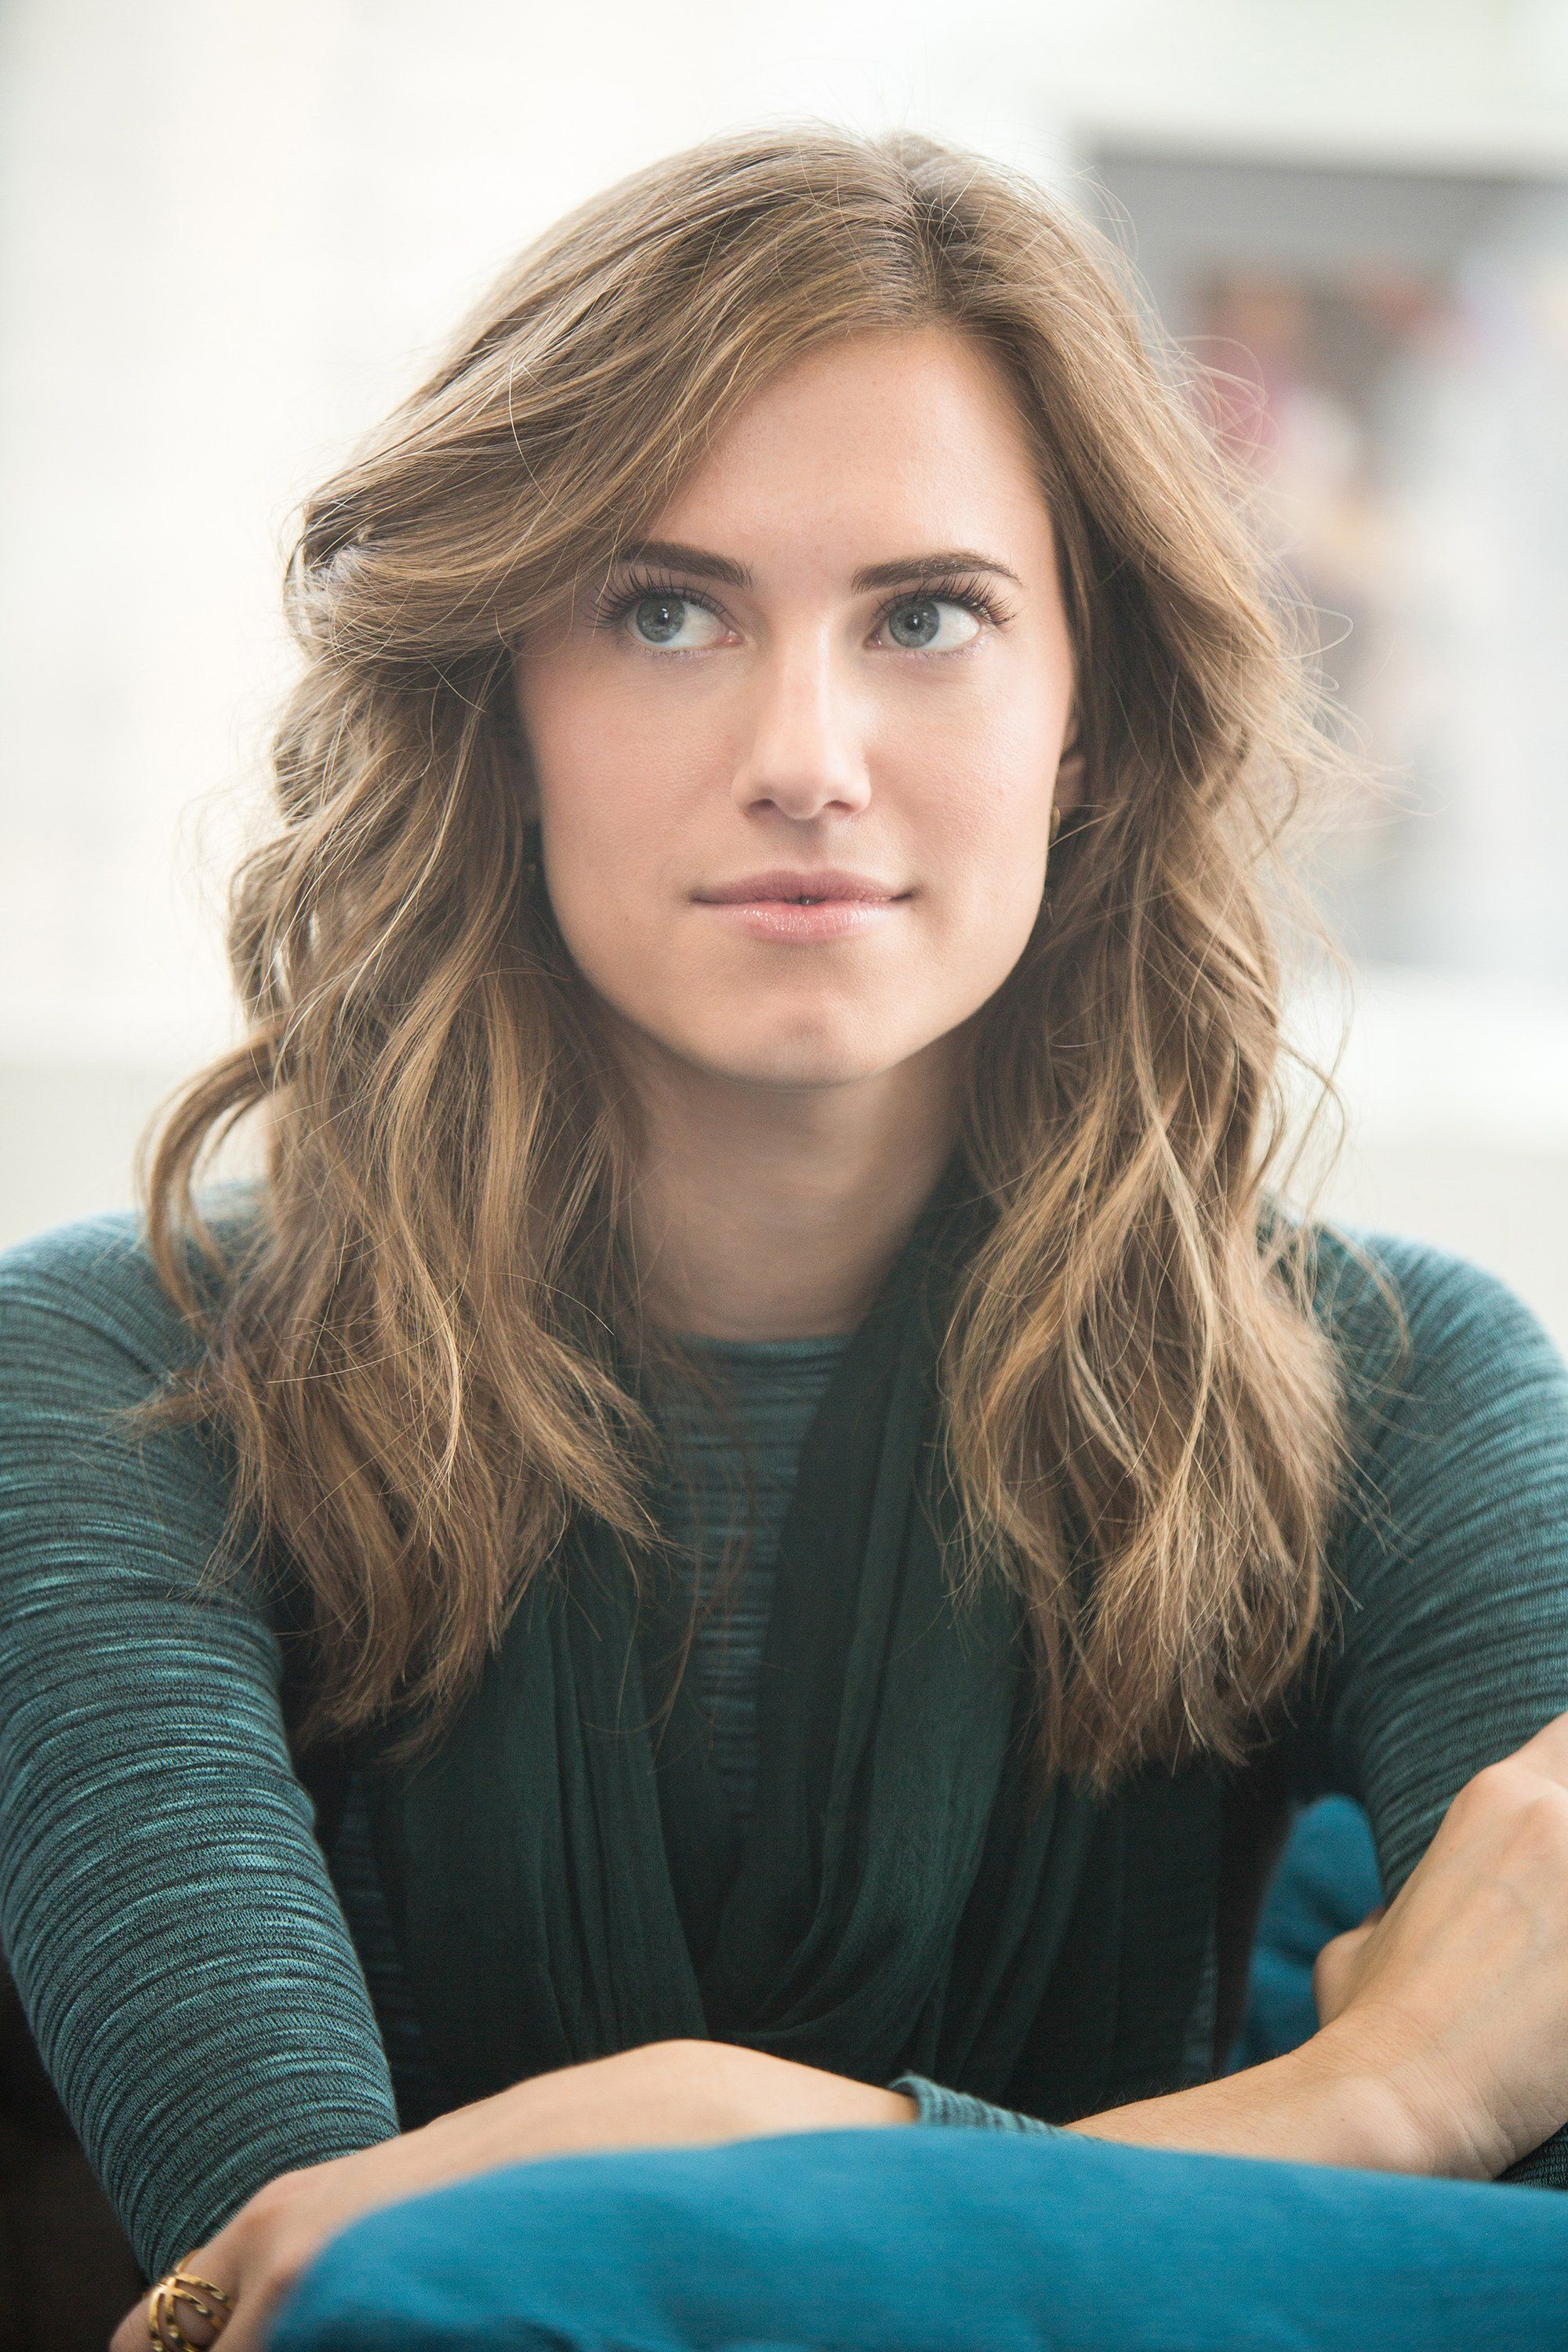 GIRLS' Star Allison Williams Scores a Deal as Face of SimpleSkincare